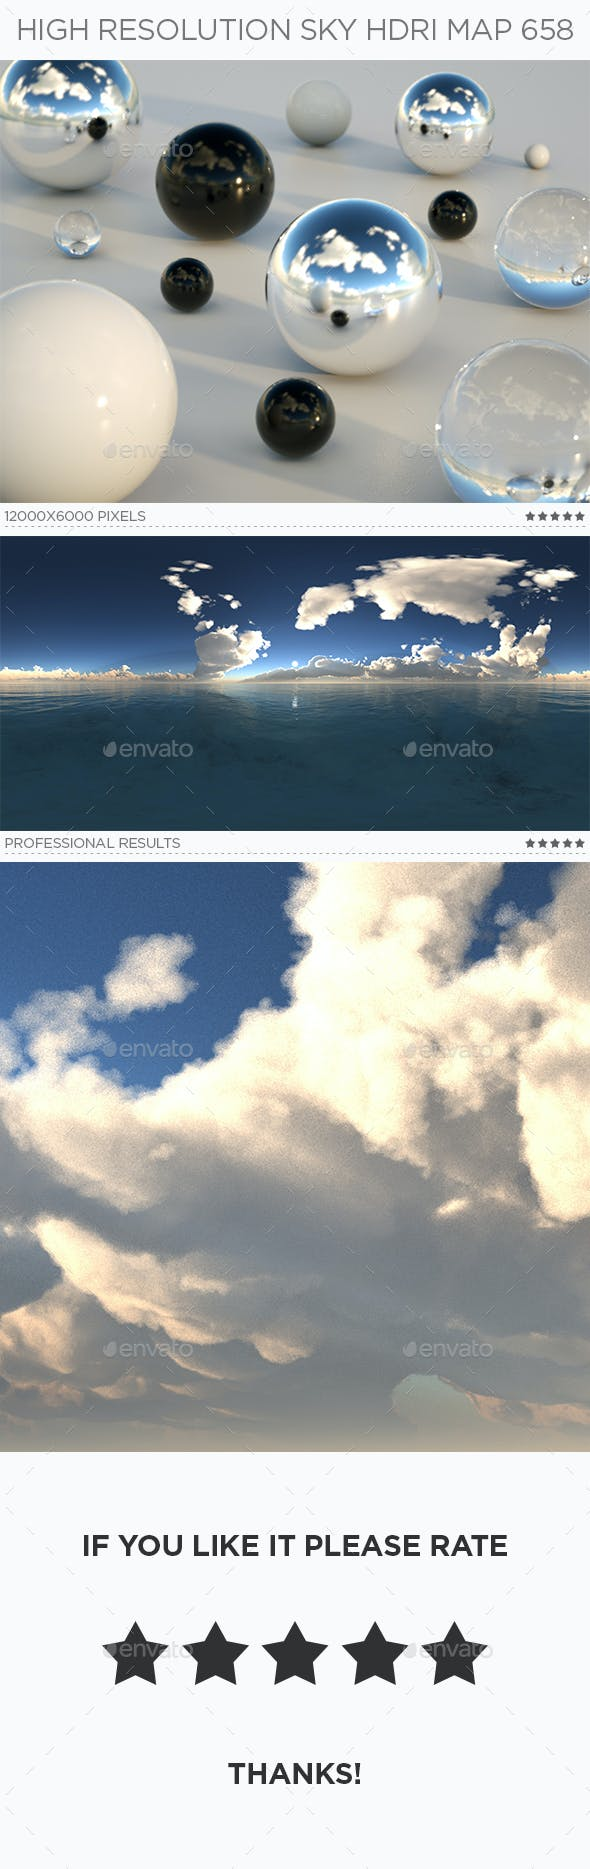 High Resolution Sky HDRi Map 658 - 3DOcean Item for Sale